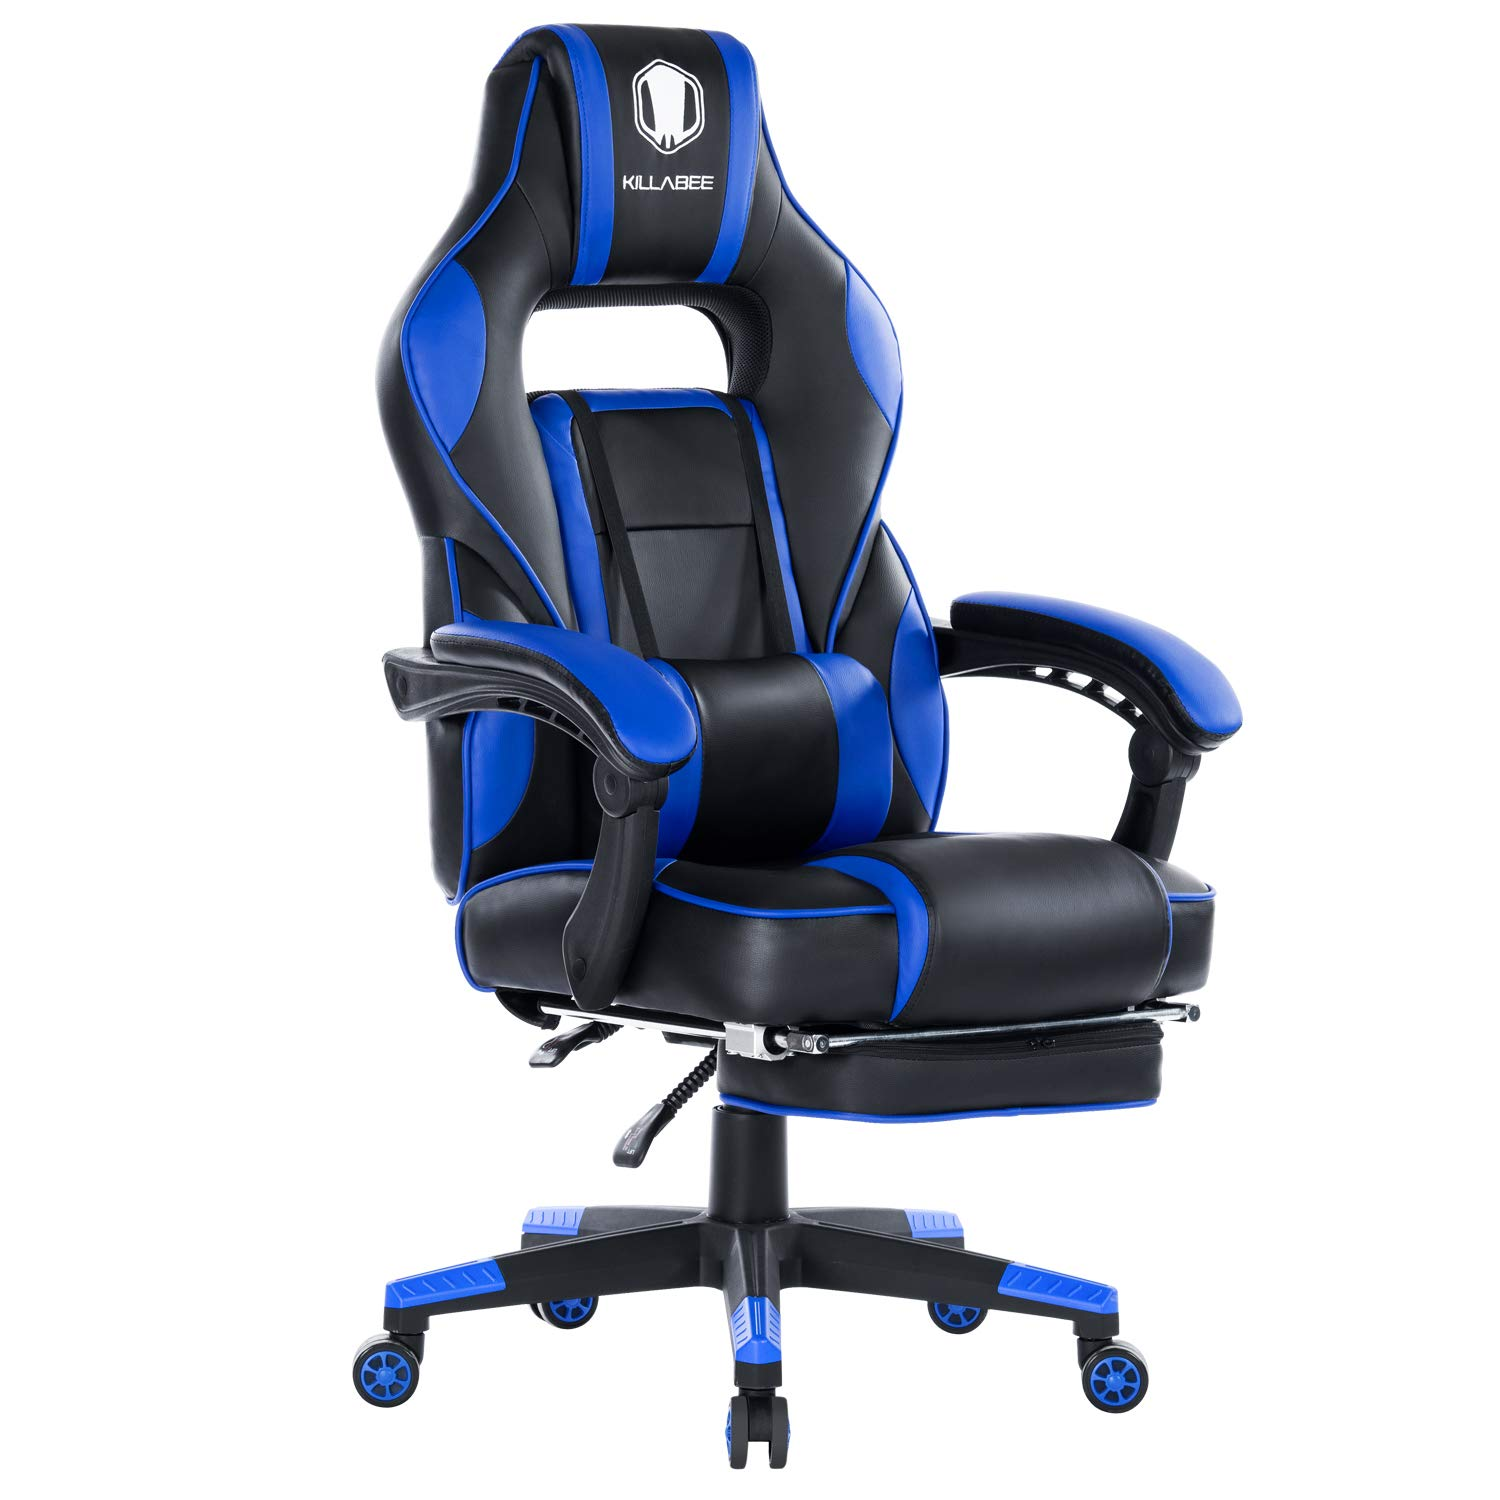 KILLABEE Reclining Memory Foam Racing Gaming Chair - Ergonomic High-Back Racing Computer Desk Office Chair with Retractable Footrest and Adjustable Lumbar Cushion (Blue) by KILLABEE